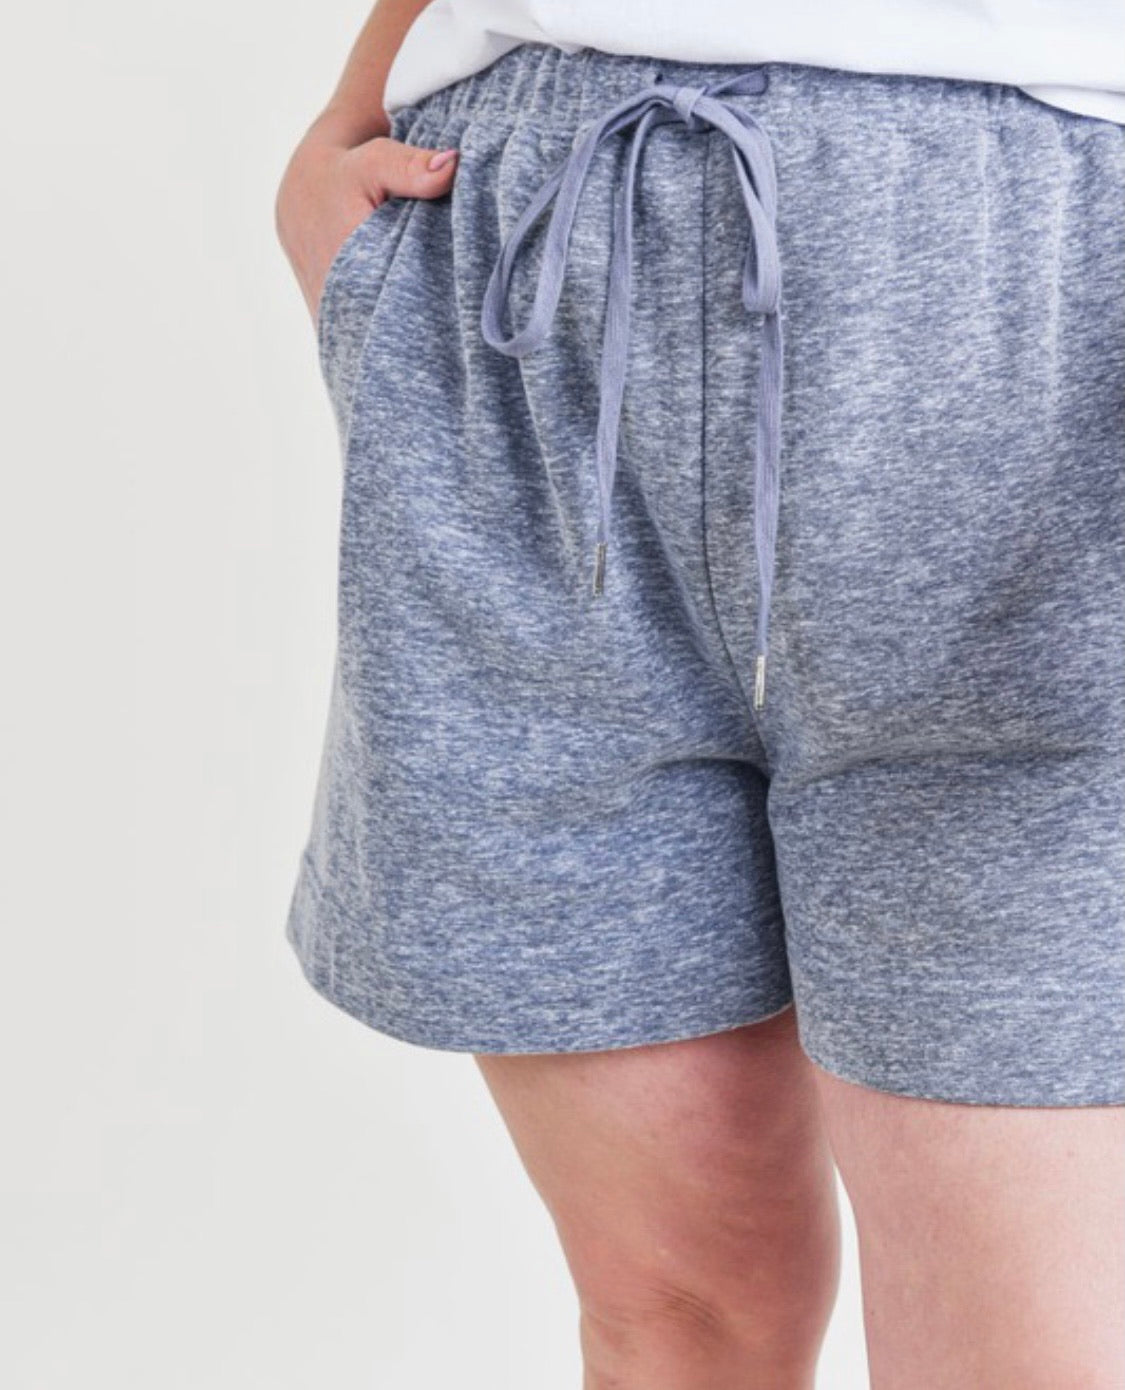 Charcoal Washed Cotton Curvy Shorts